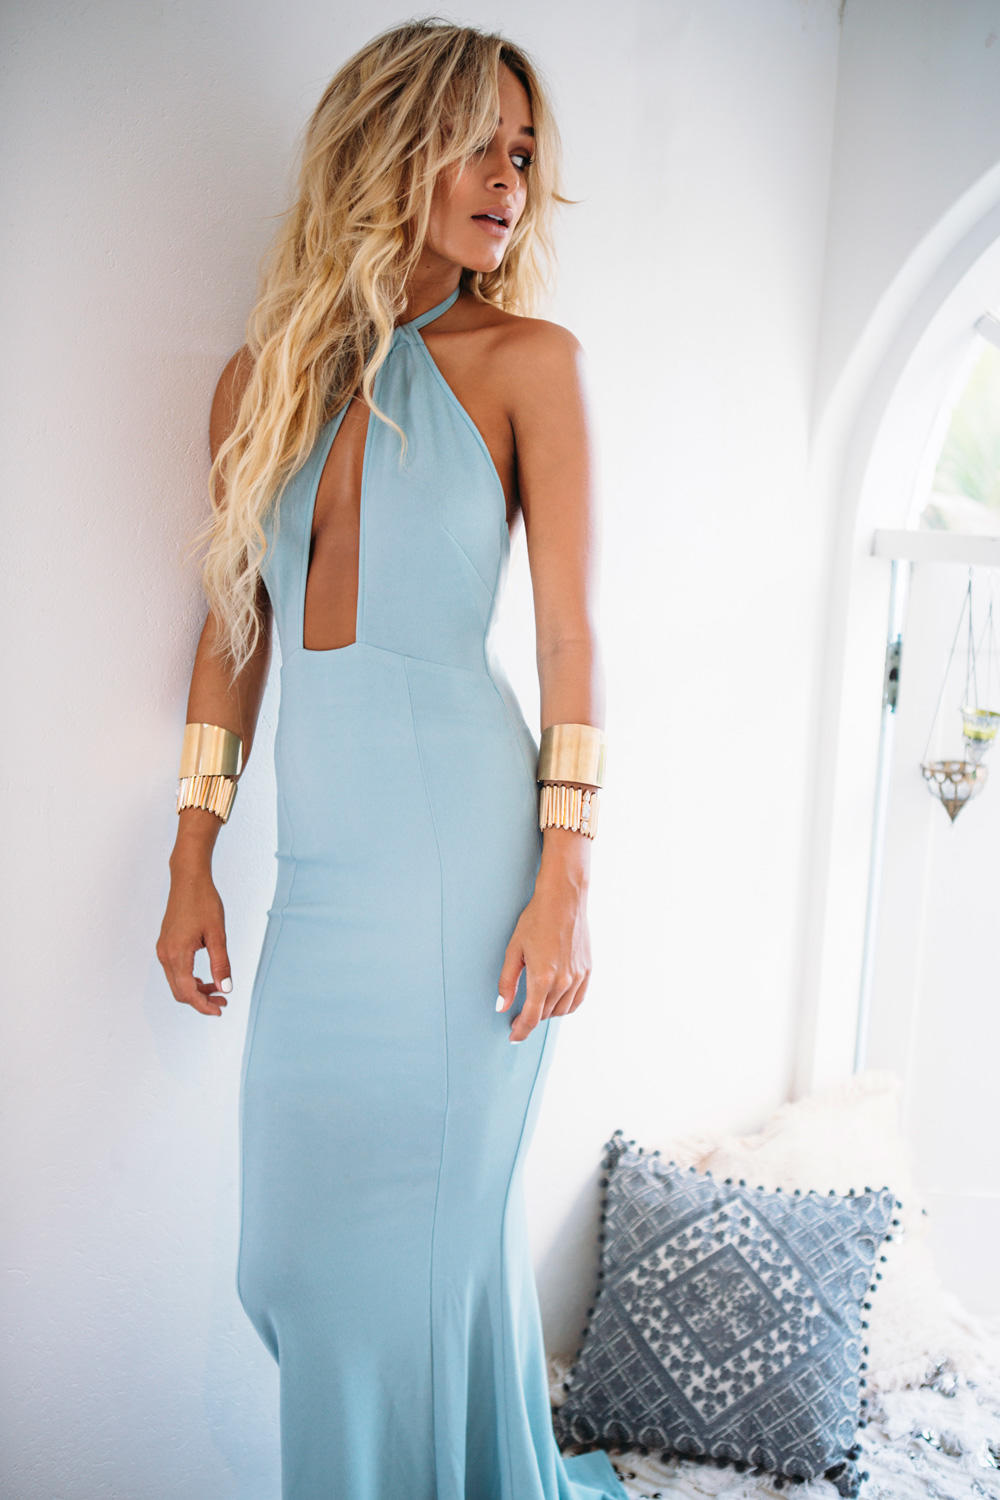 Blue Homecoming Dresses From Forever 21 | Dress images